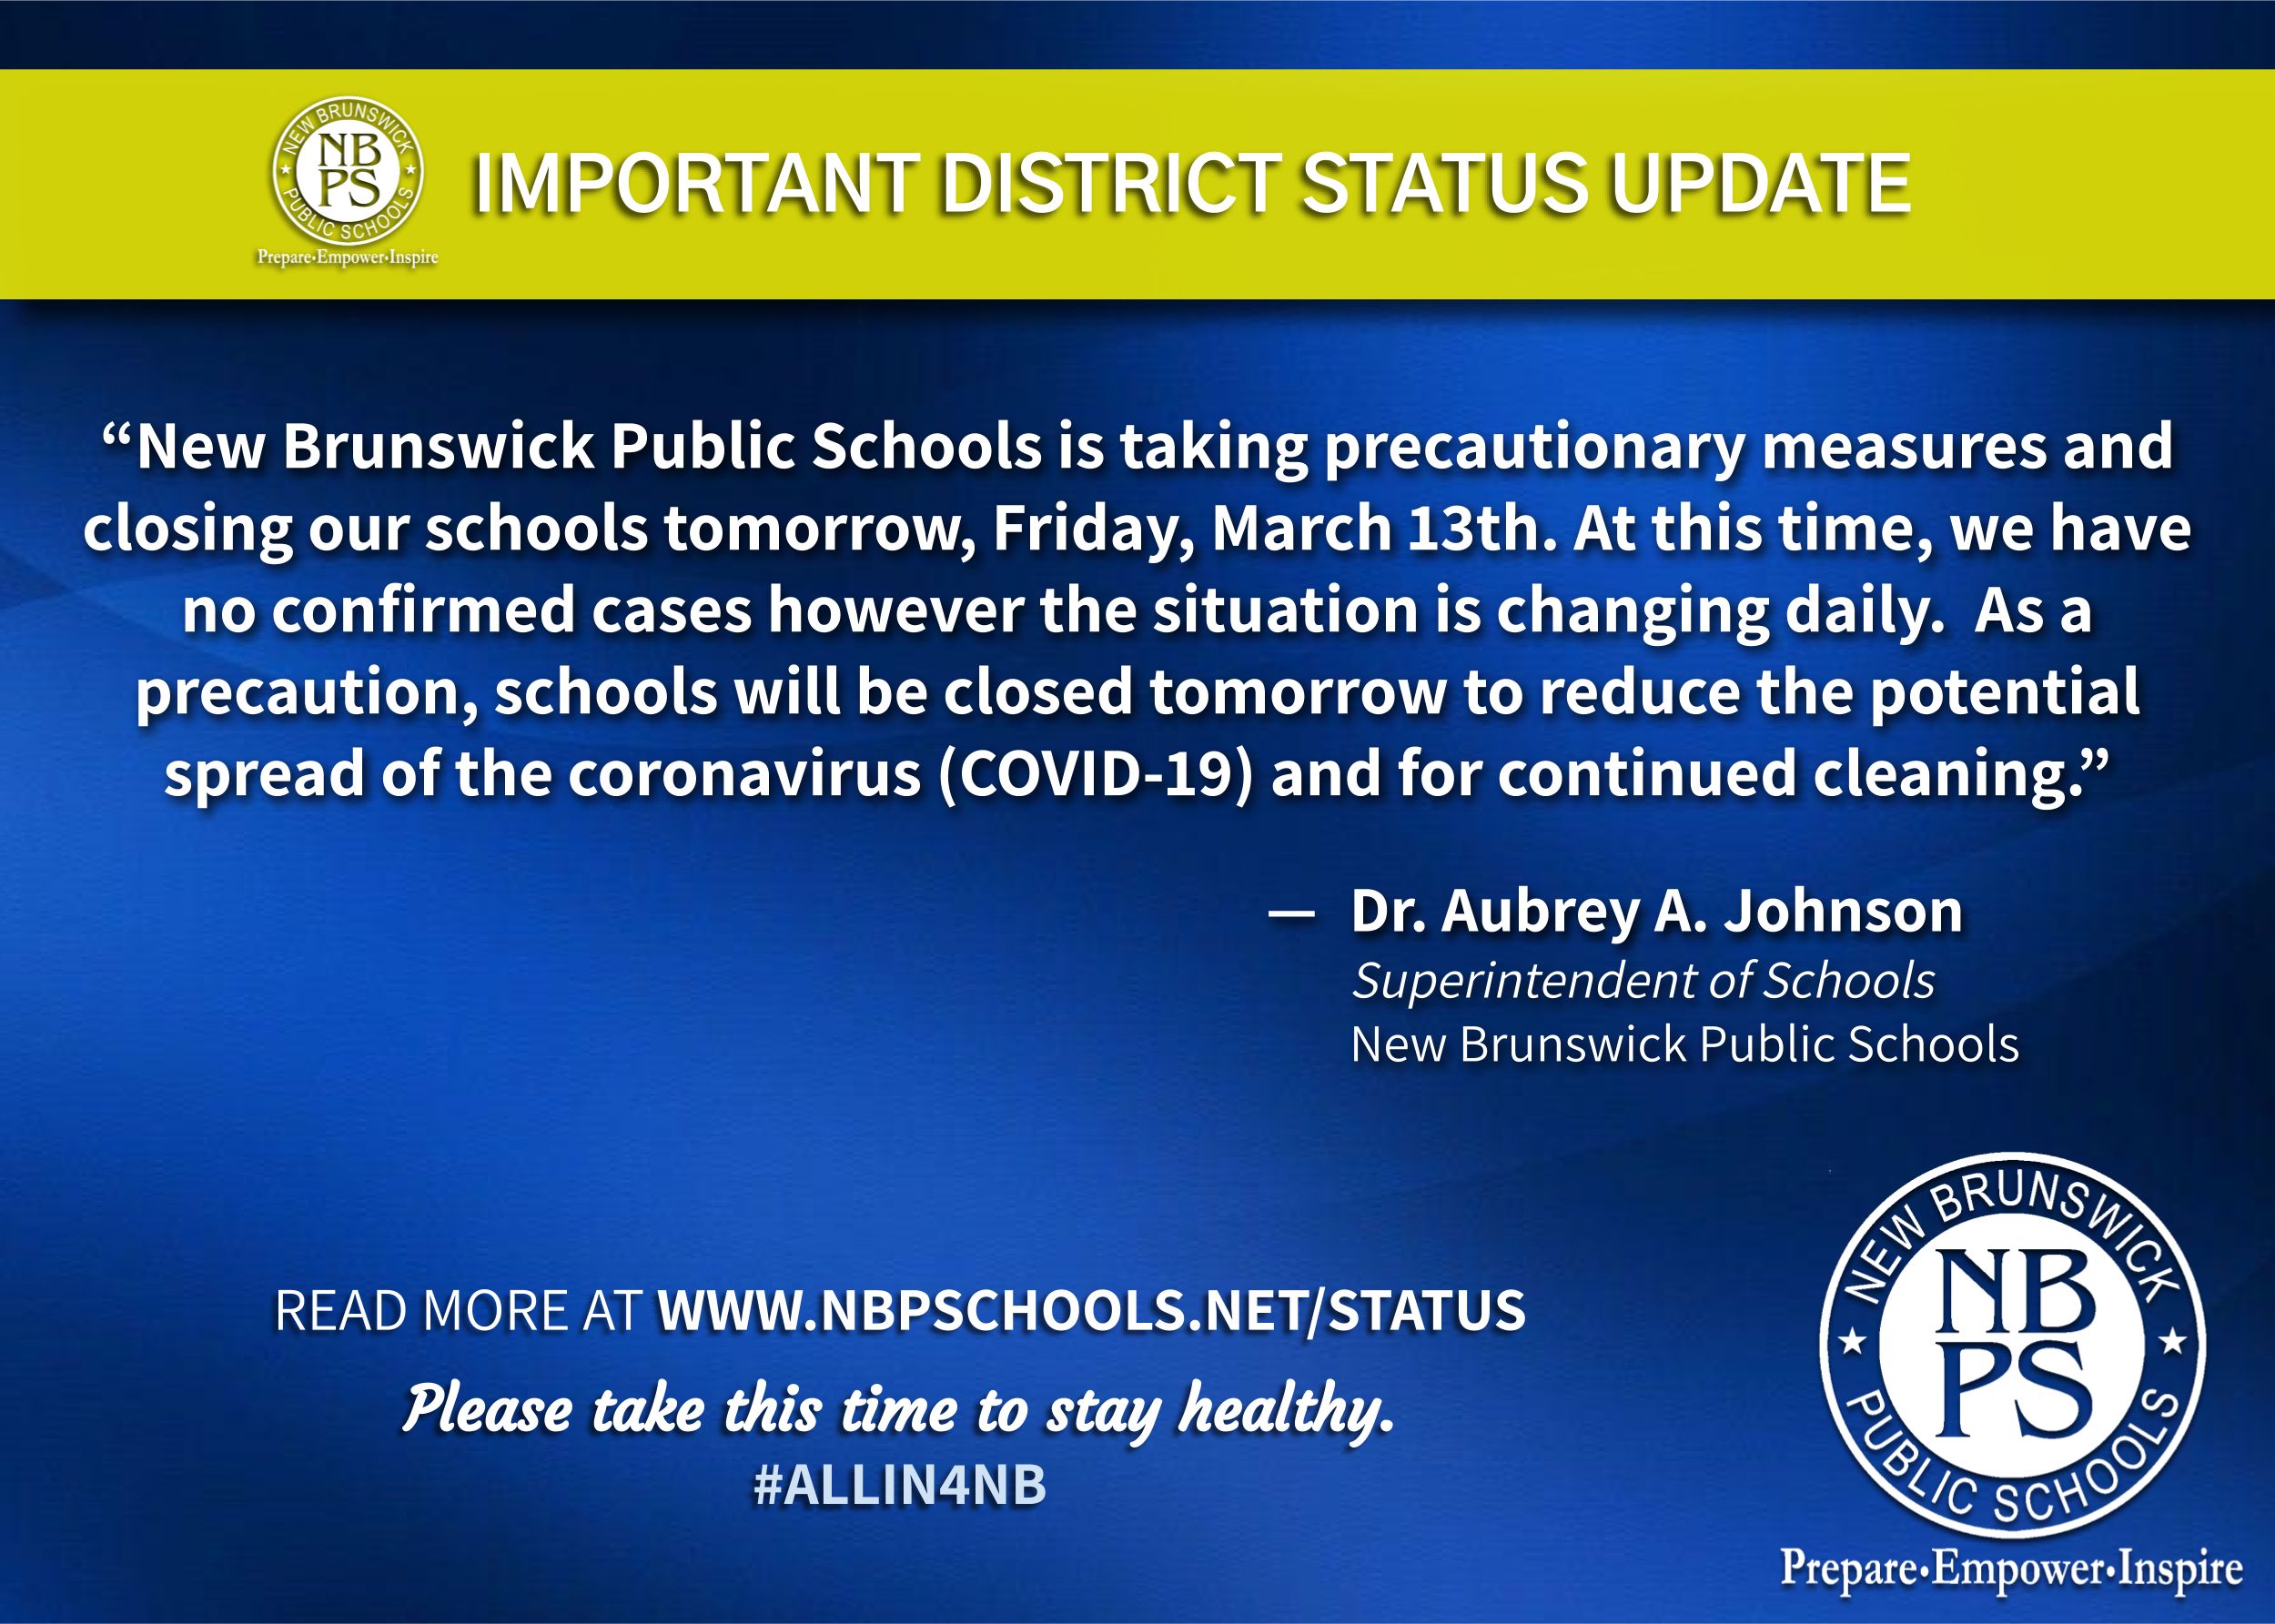 Message from the Superintendent of Schools